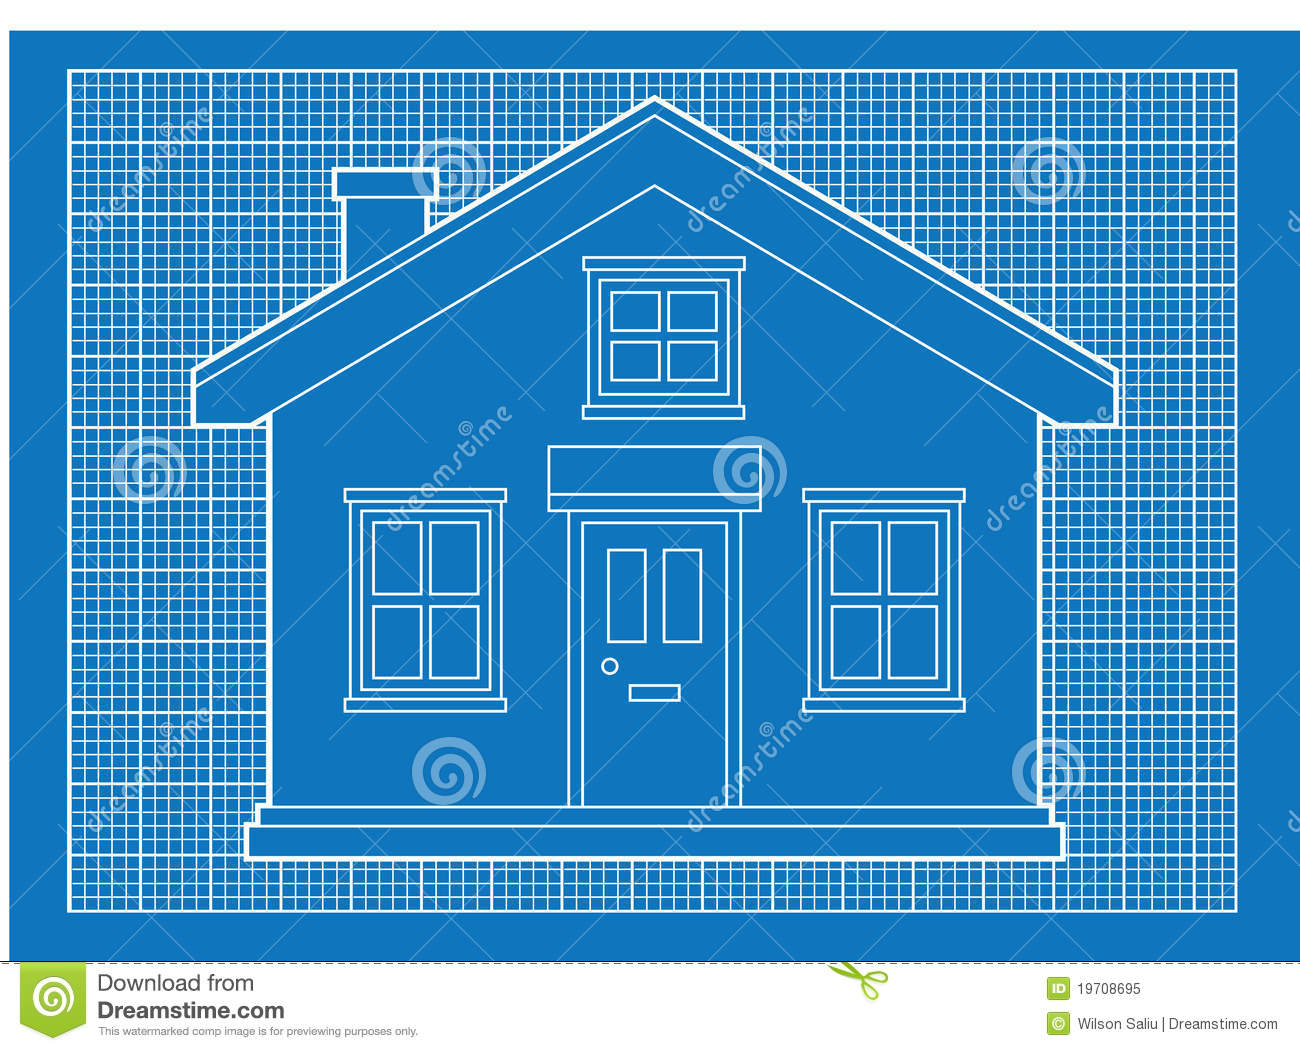 Simple house blueprints royalty free stock photo image Blueprints for my house